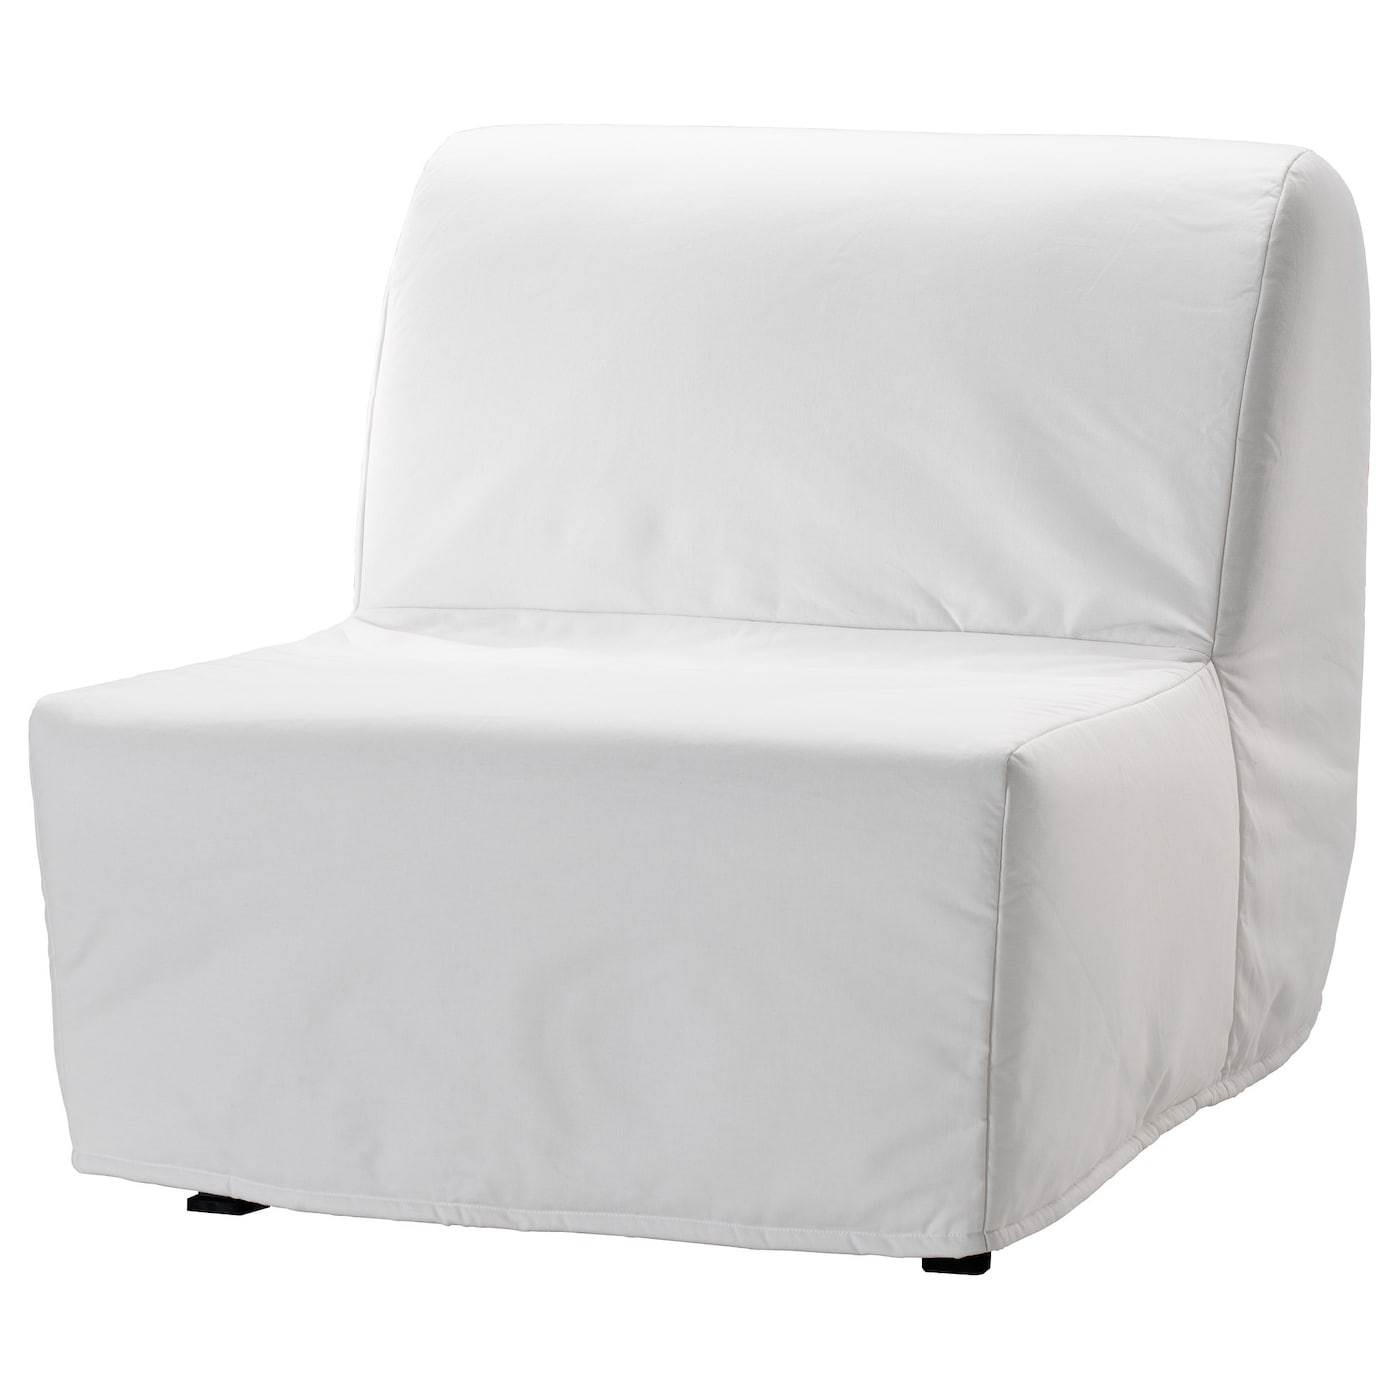 Ikea Lycksele LÖvÅs Chair Bed A Simple Firm Foam Mattress For Use Every Night